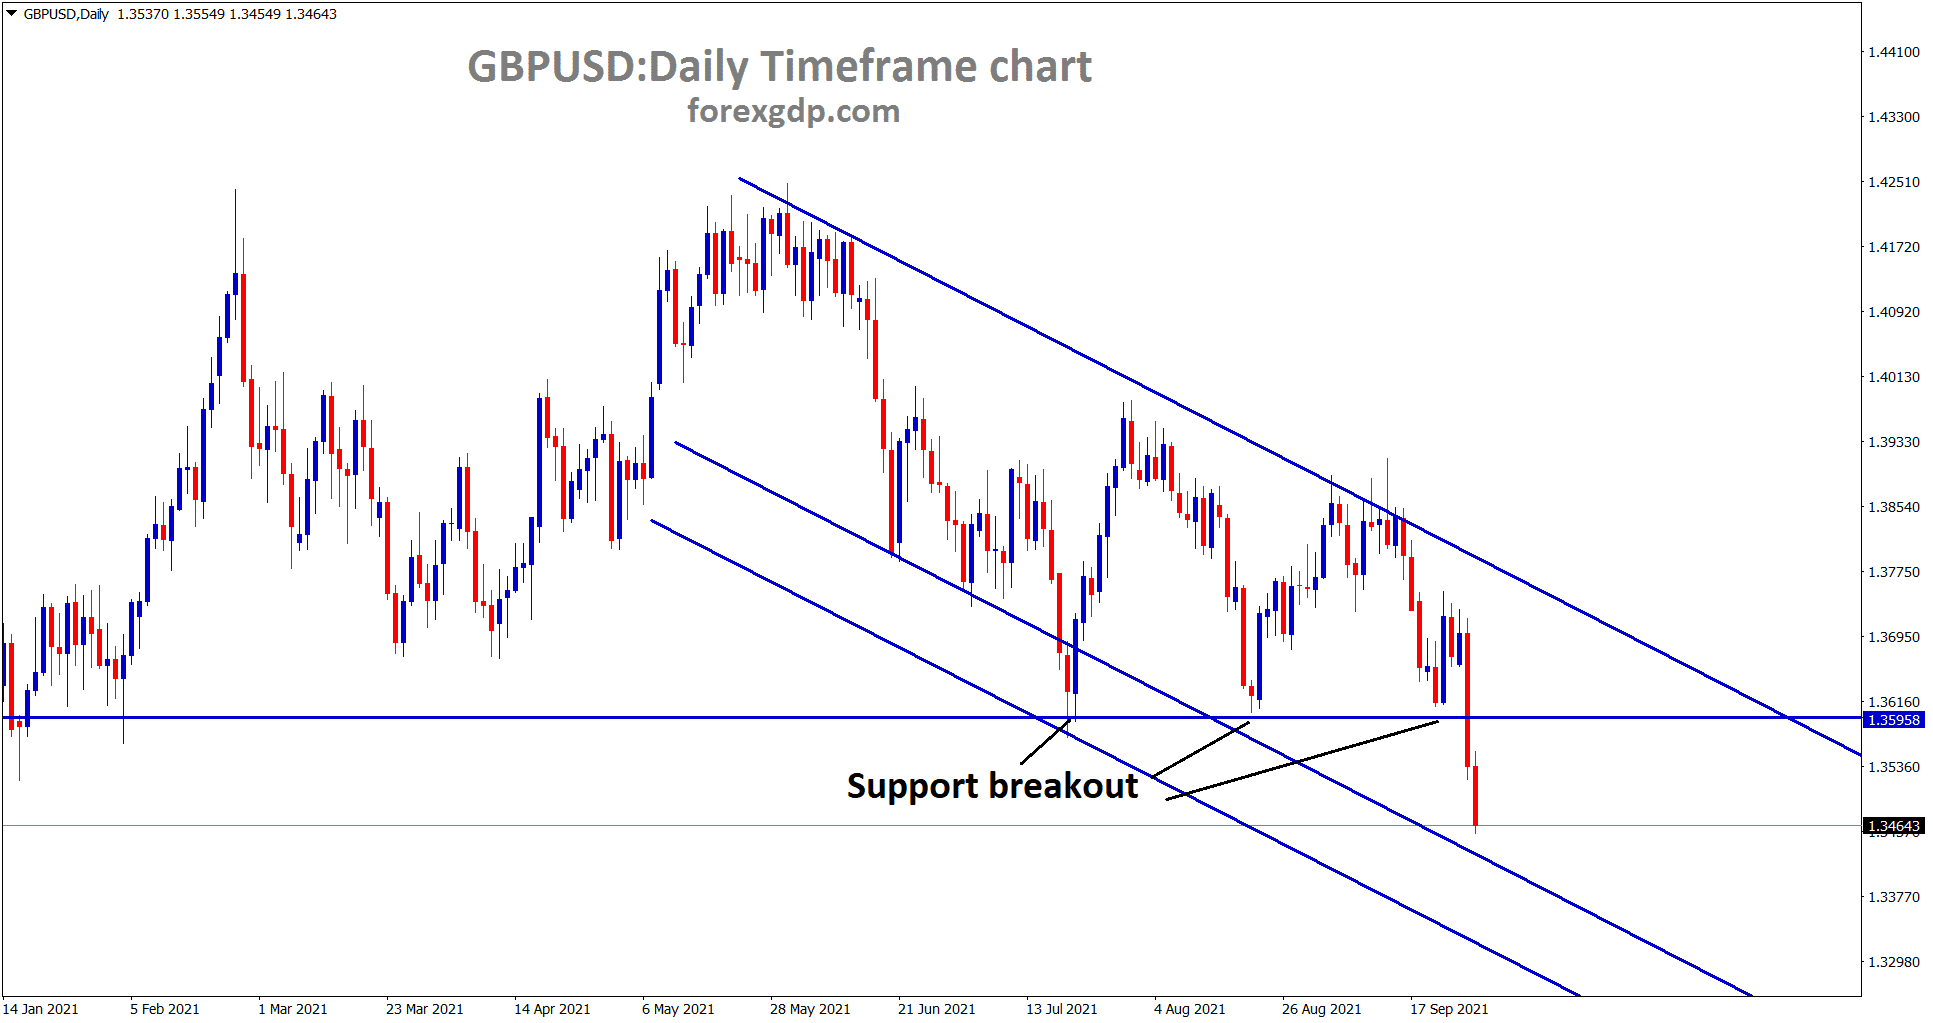 GBPUSD is moving in a downtrend breaking the recent support areas